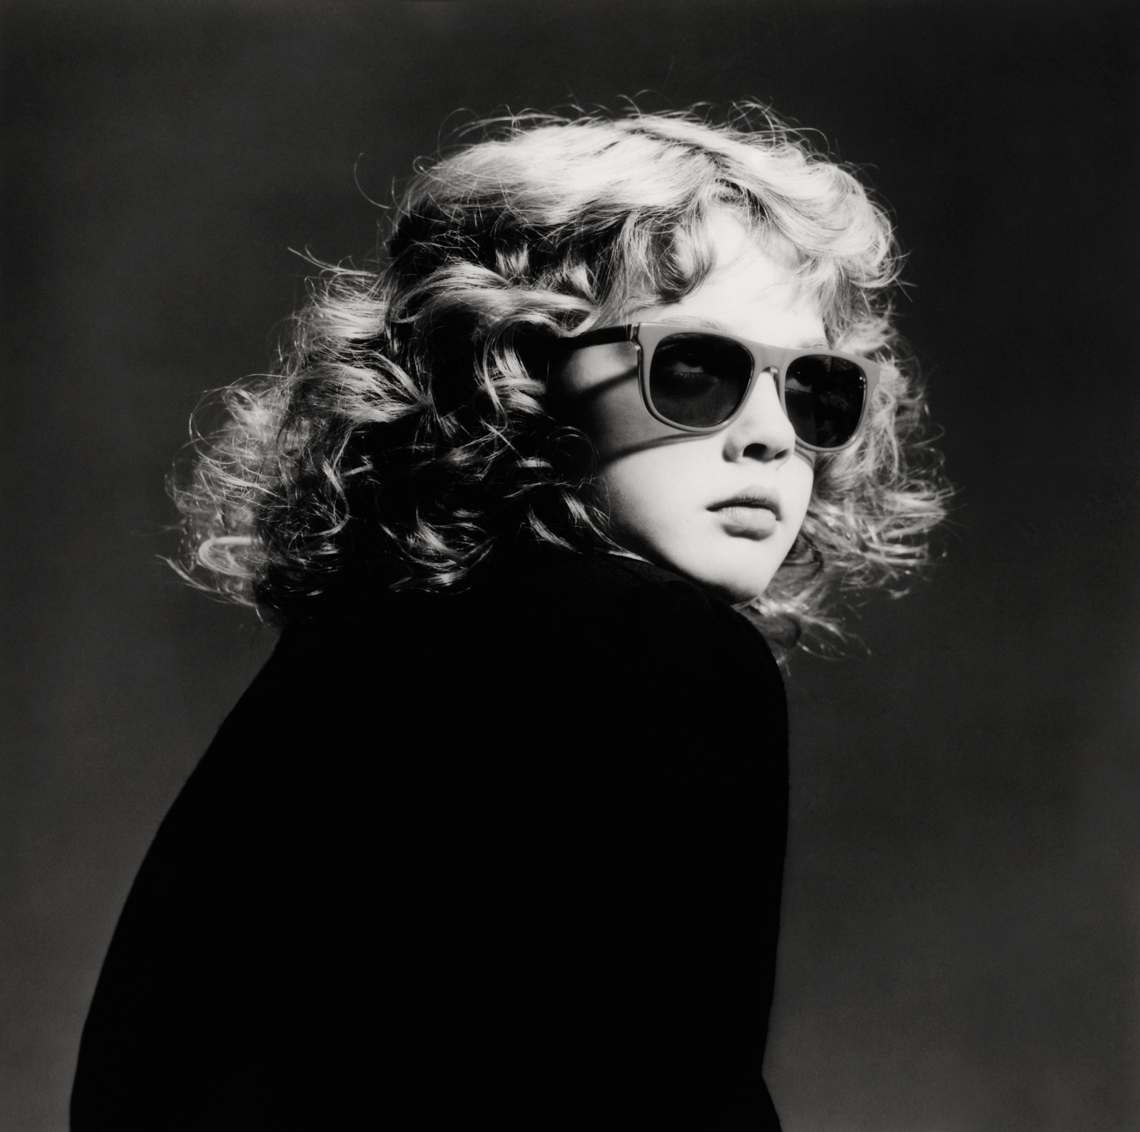 155._Drew_Barrymore__Los_Angeles__1991.tif